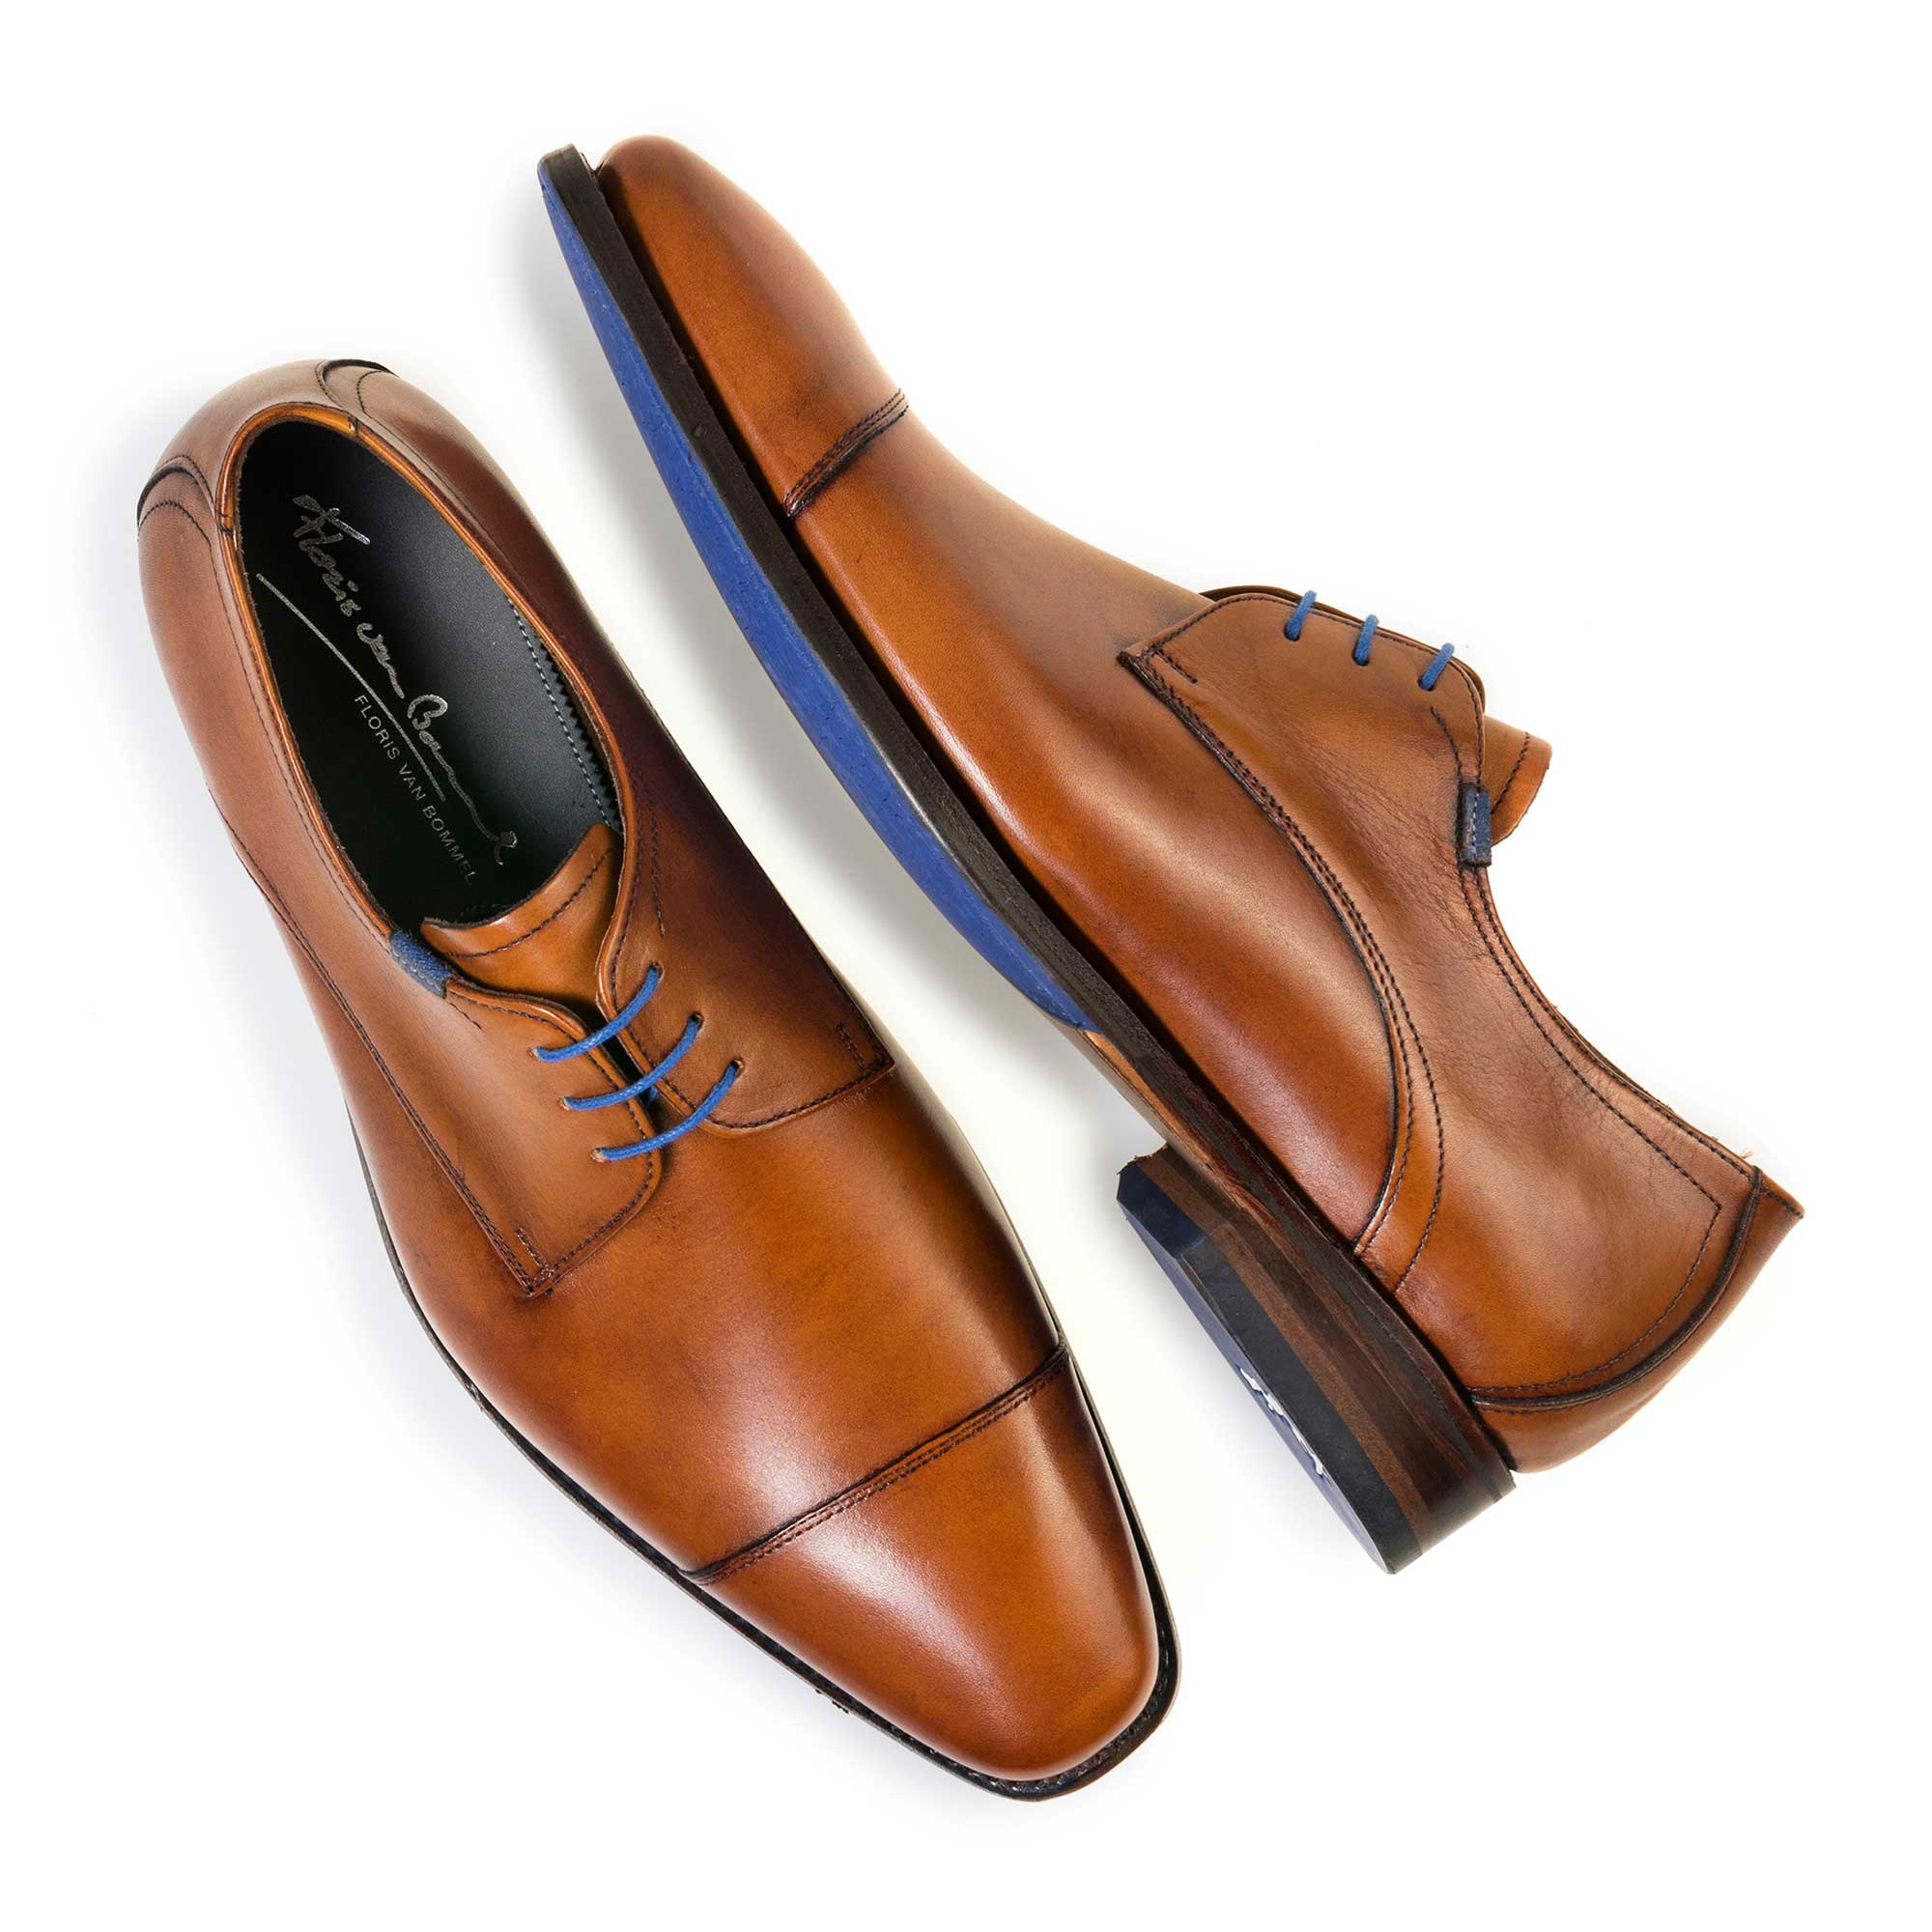 14370/00 - Cognac-coloured calf's leather lace shoe